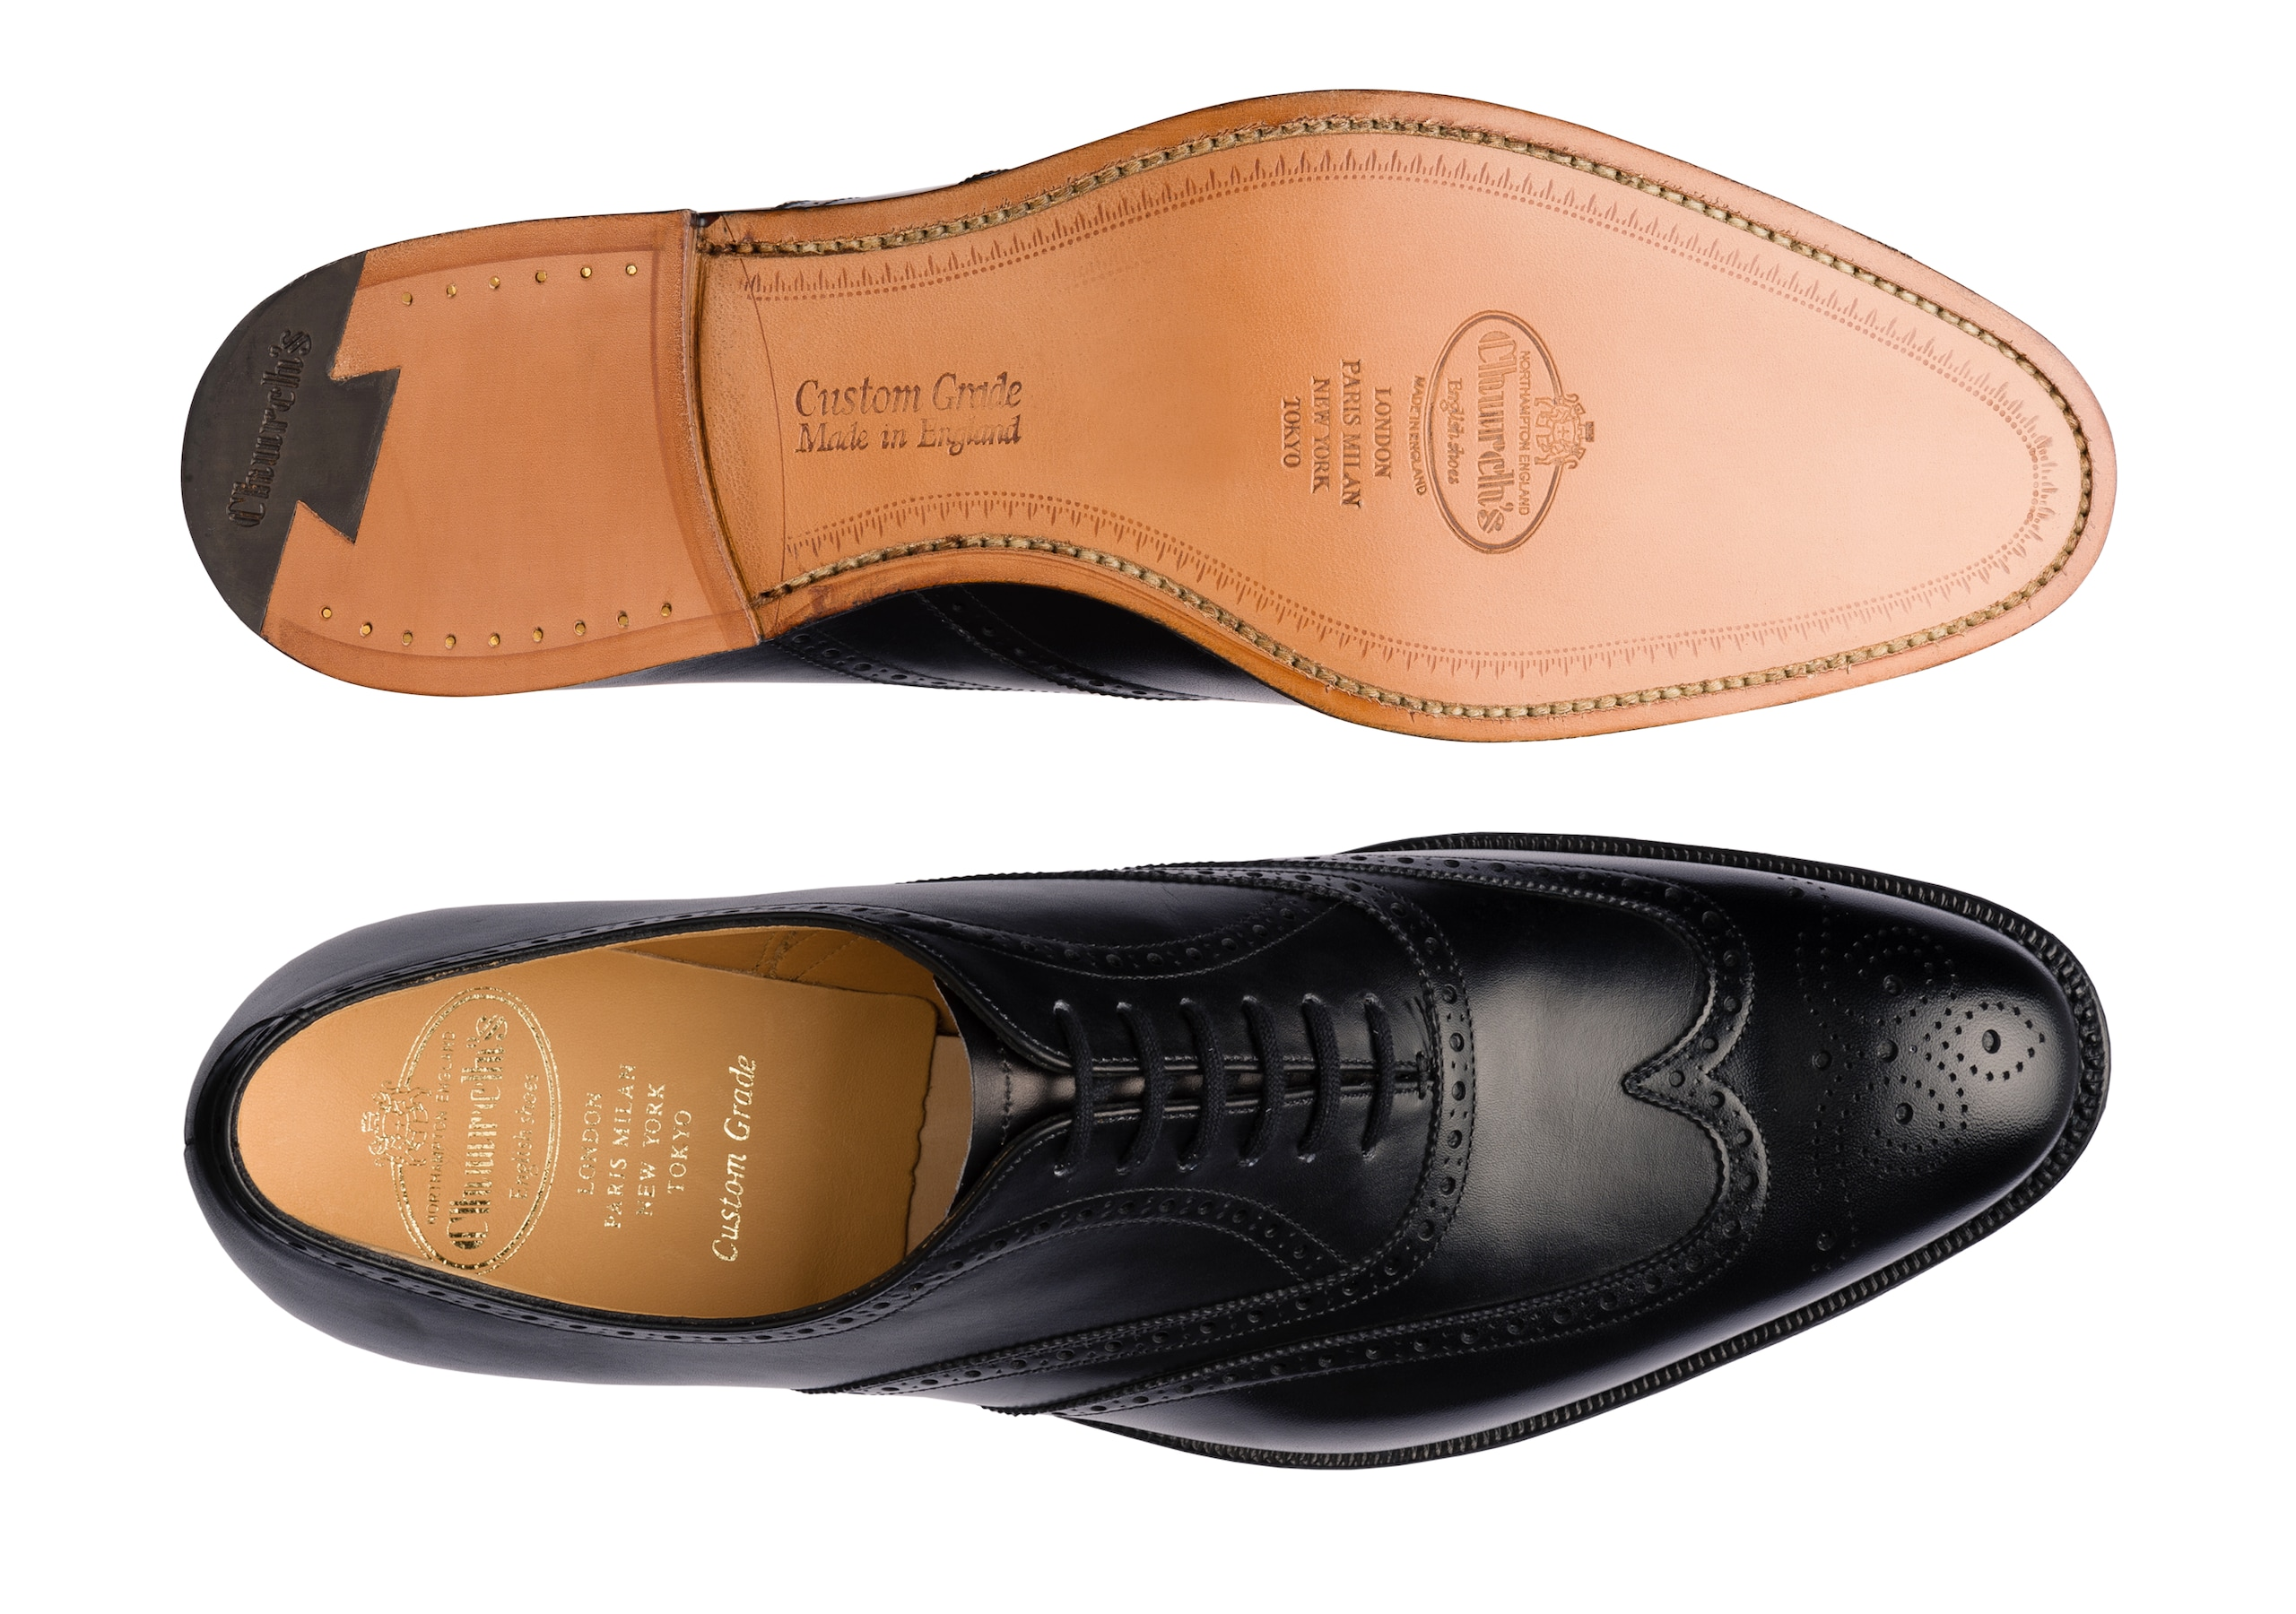 Berlin Church's Calf Leather Oxford Brogue Black